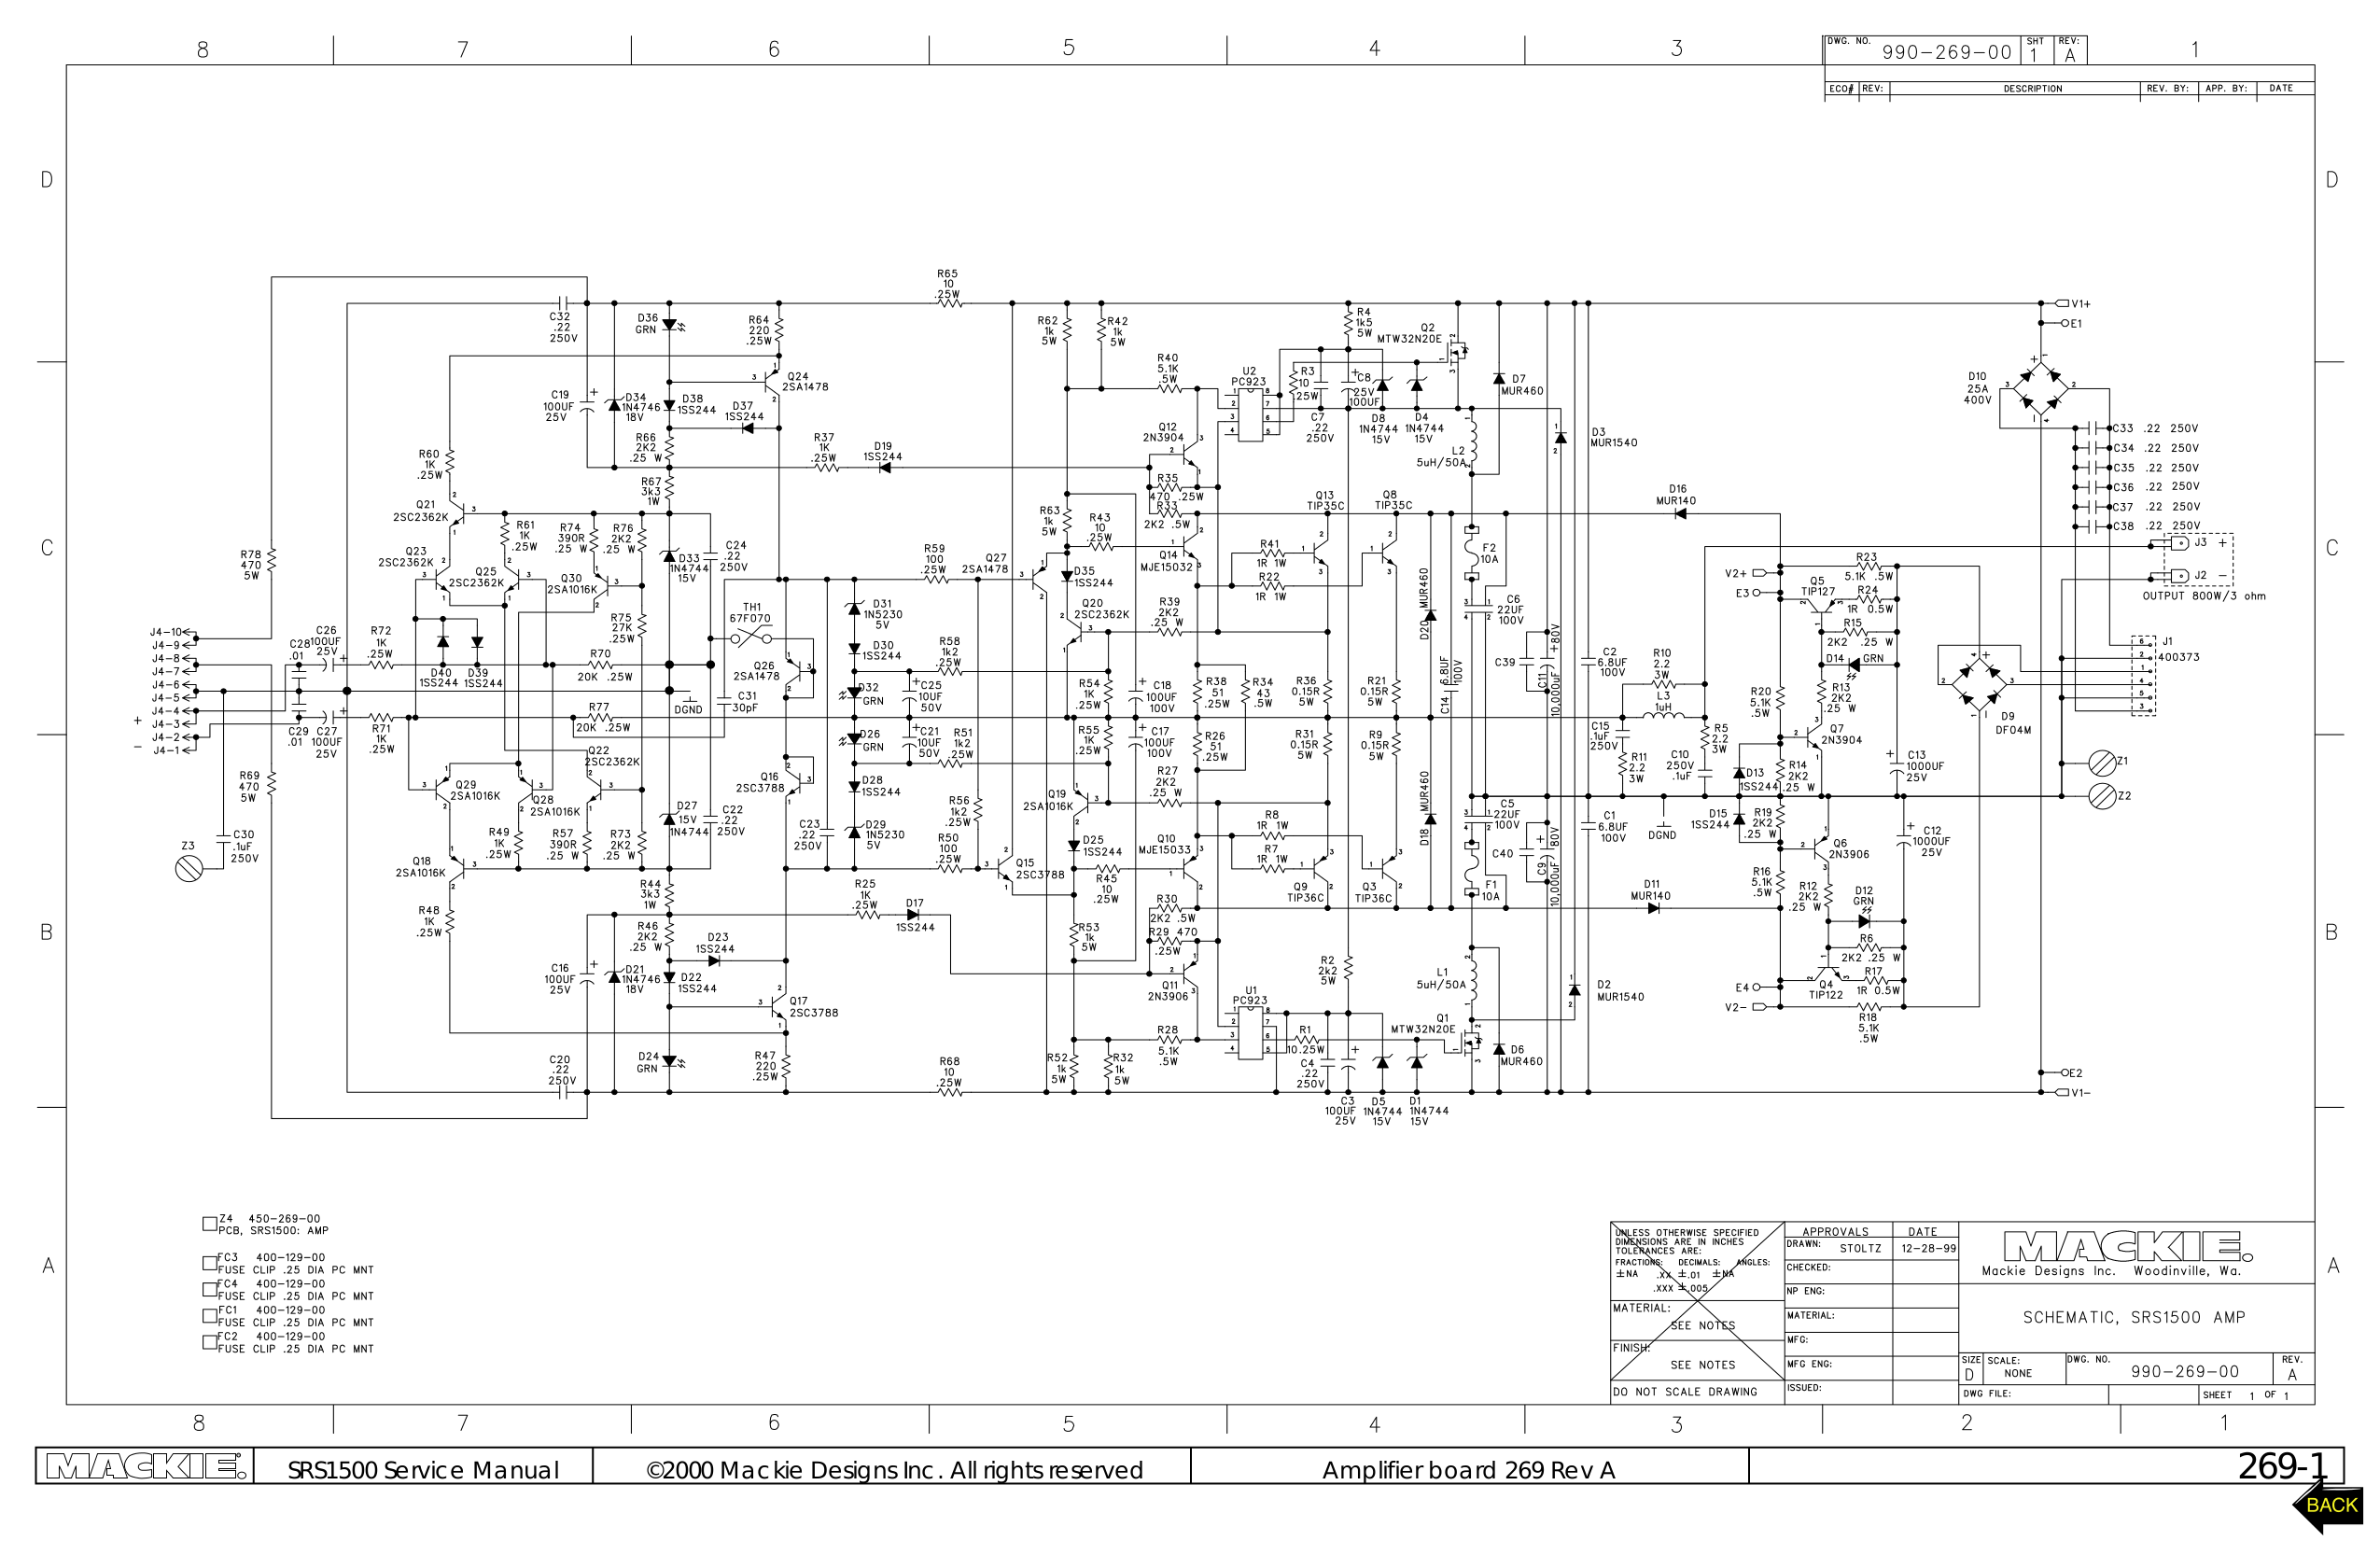 ford puma fuse box wiring liry f fx diagram of diagrams x